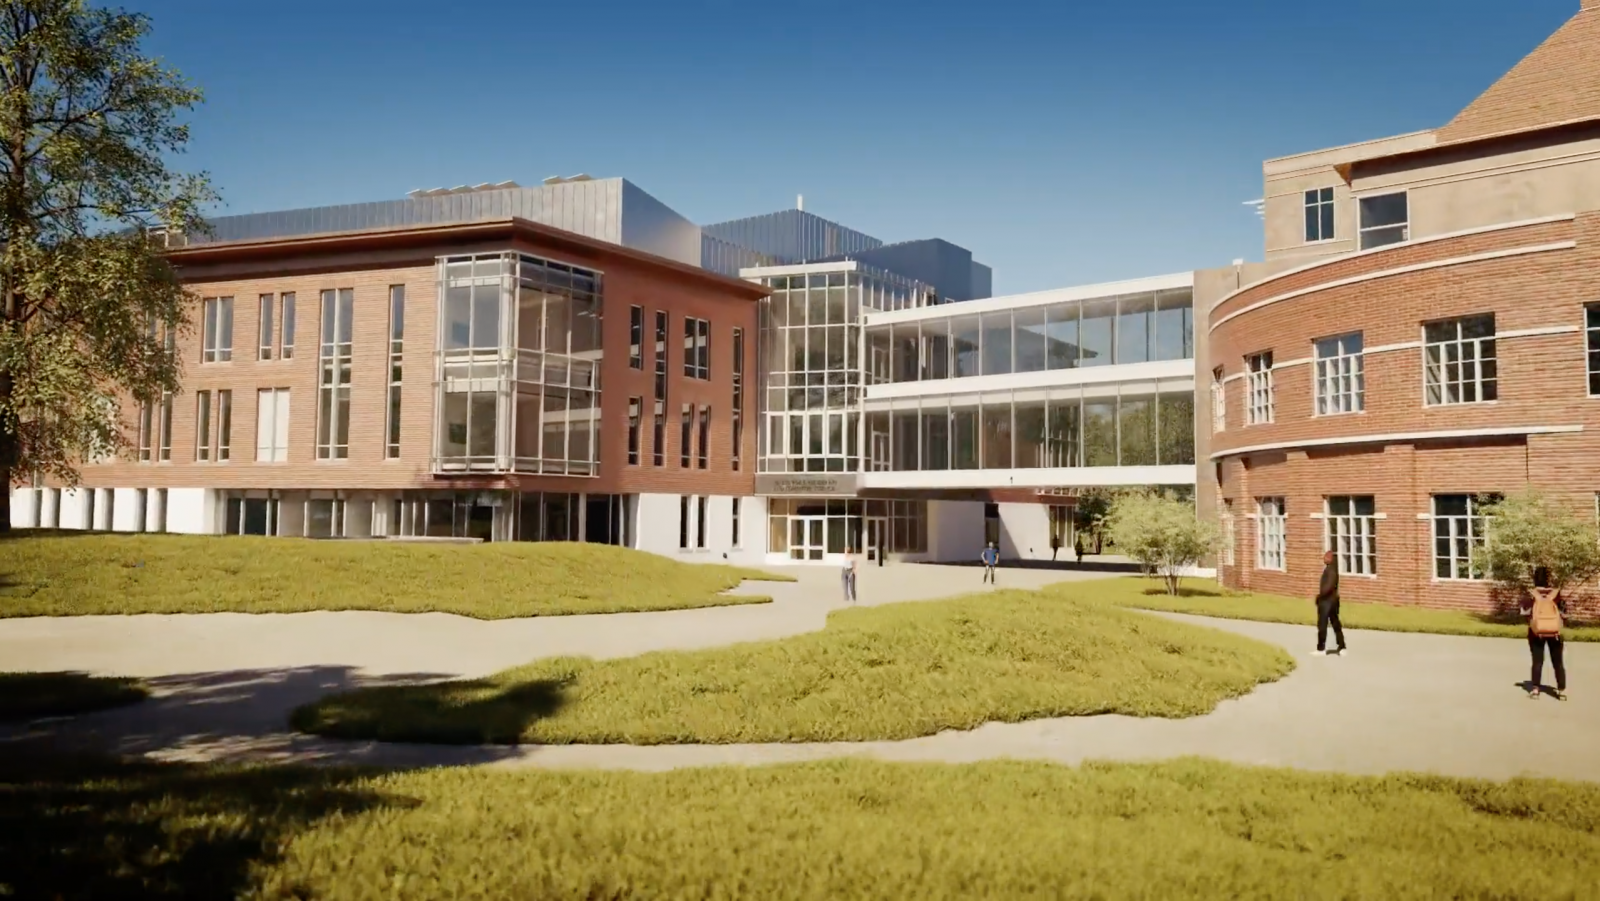 Rendering of the outside of the Center for Engineering and Computer Science